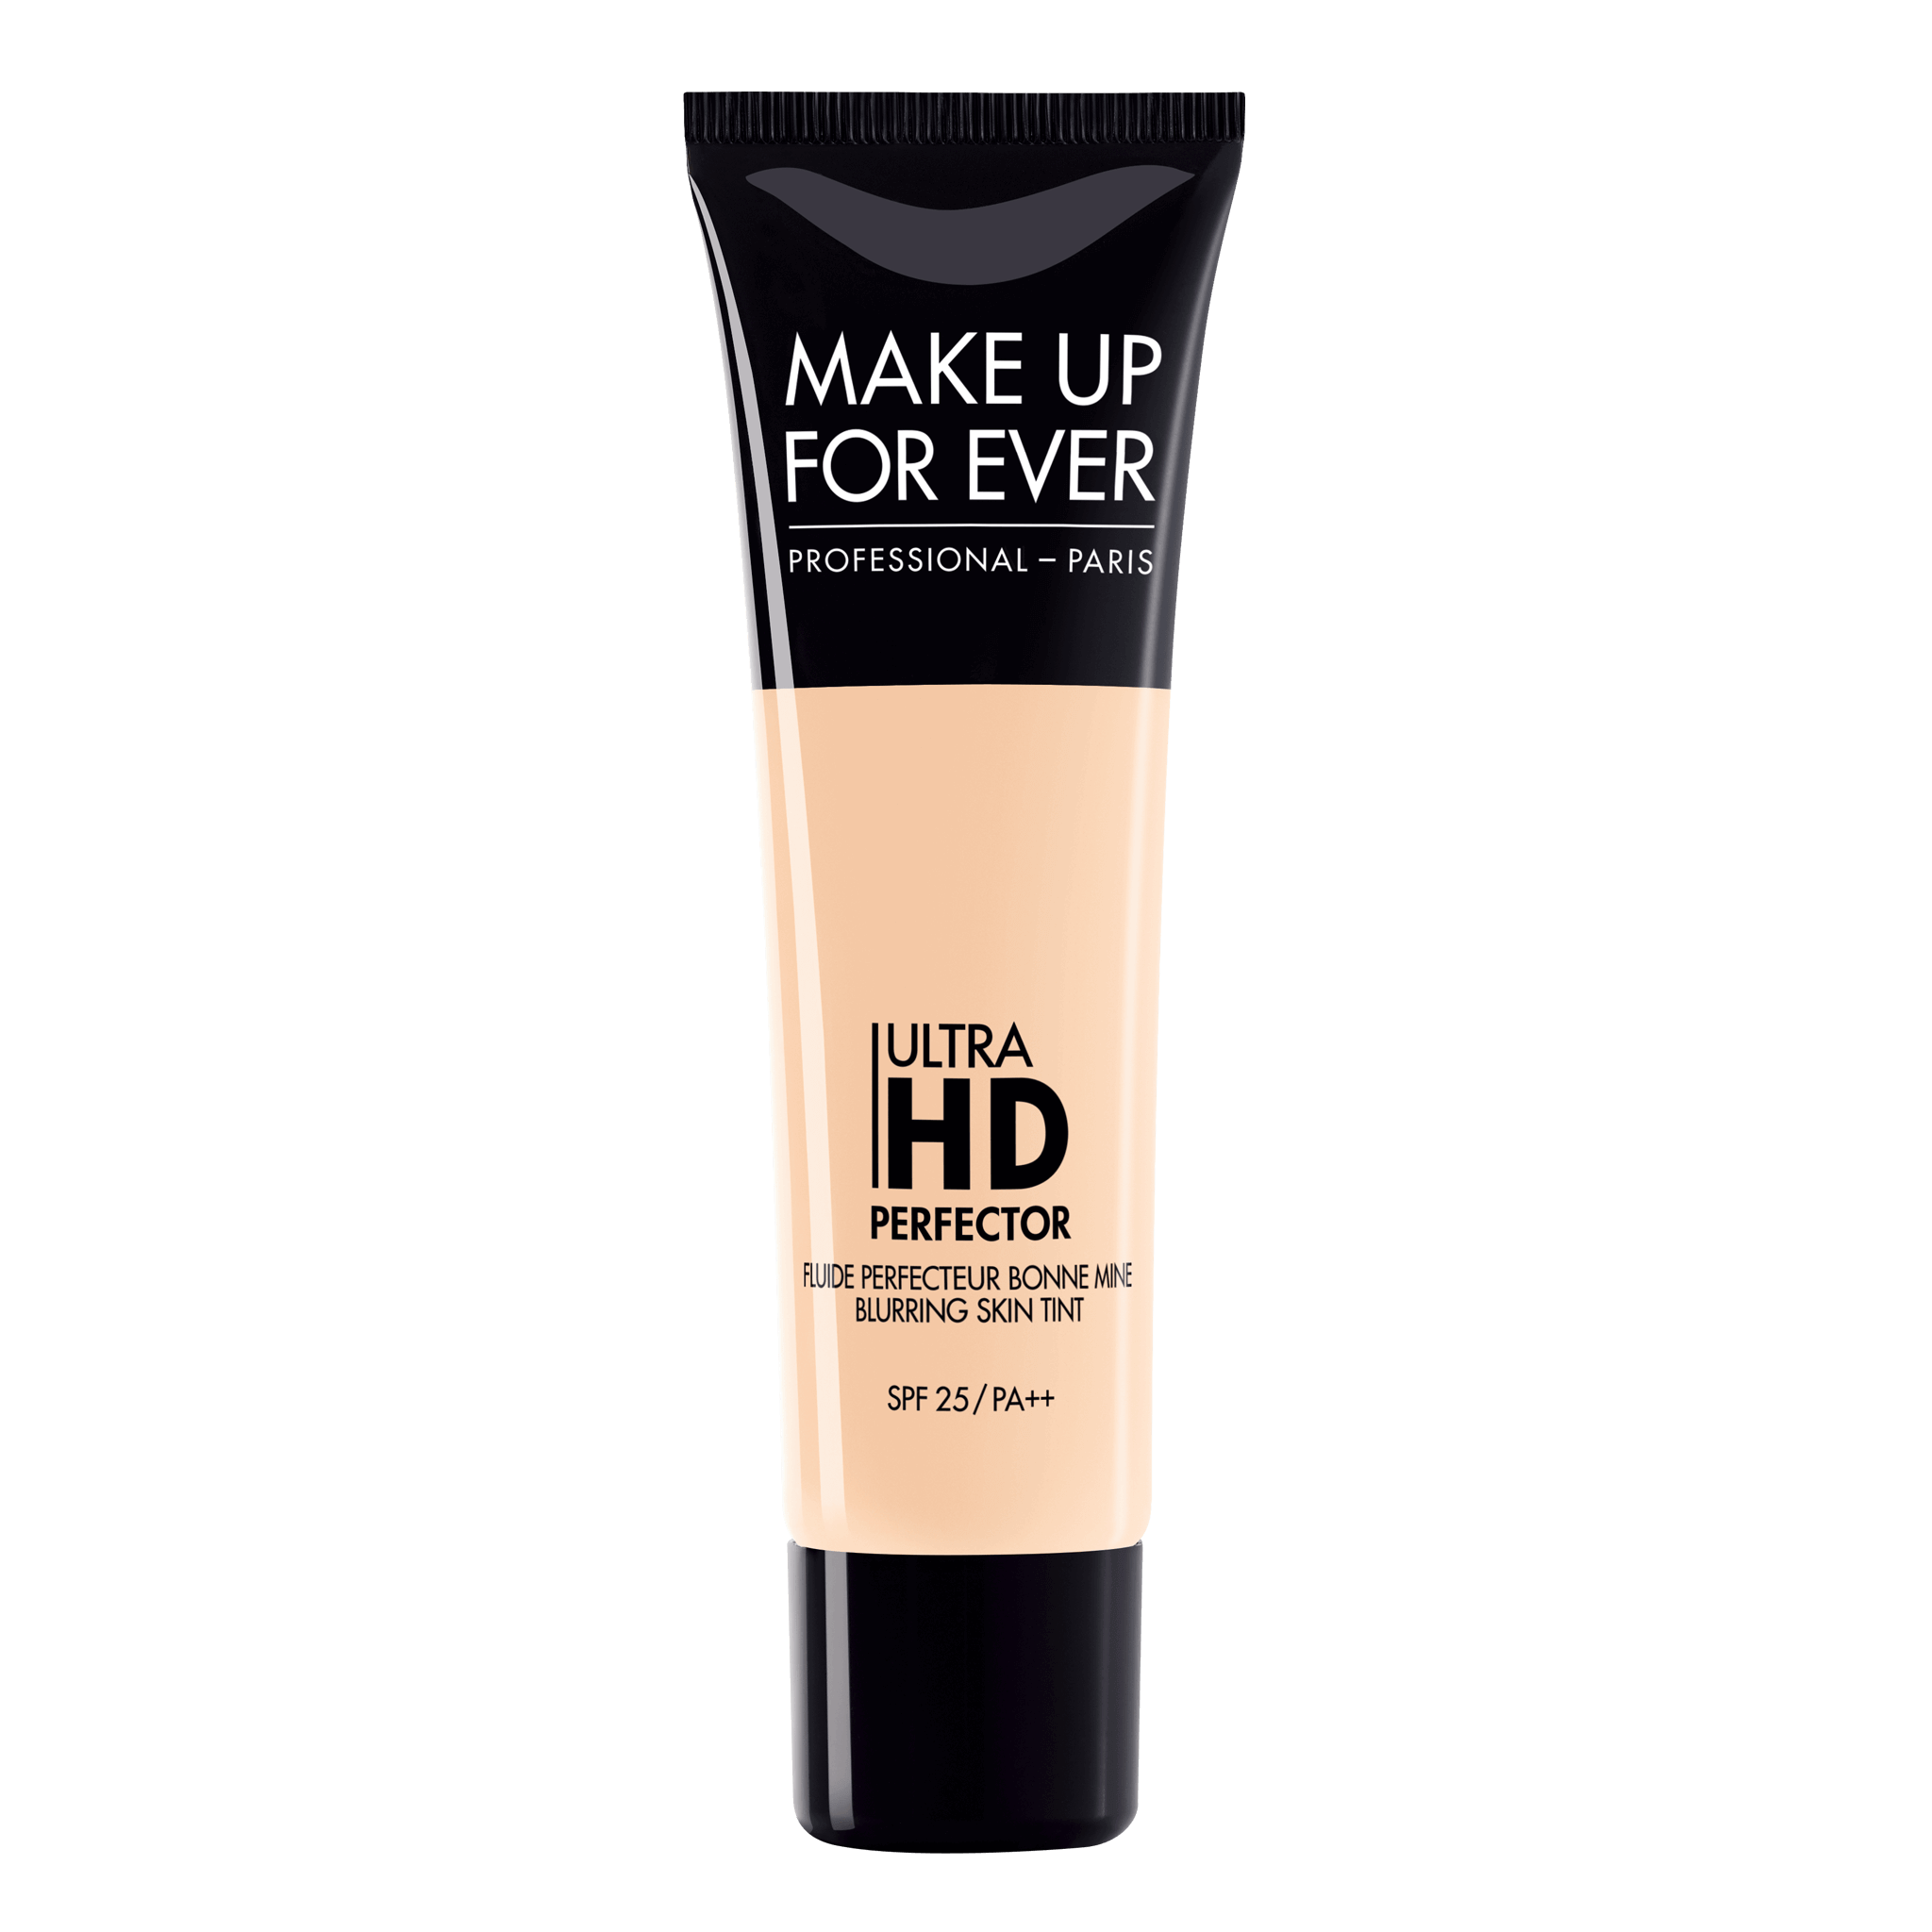 ULTRA HD PERFECTOR is a new generation of perfecting skin